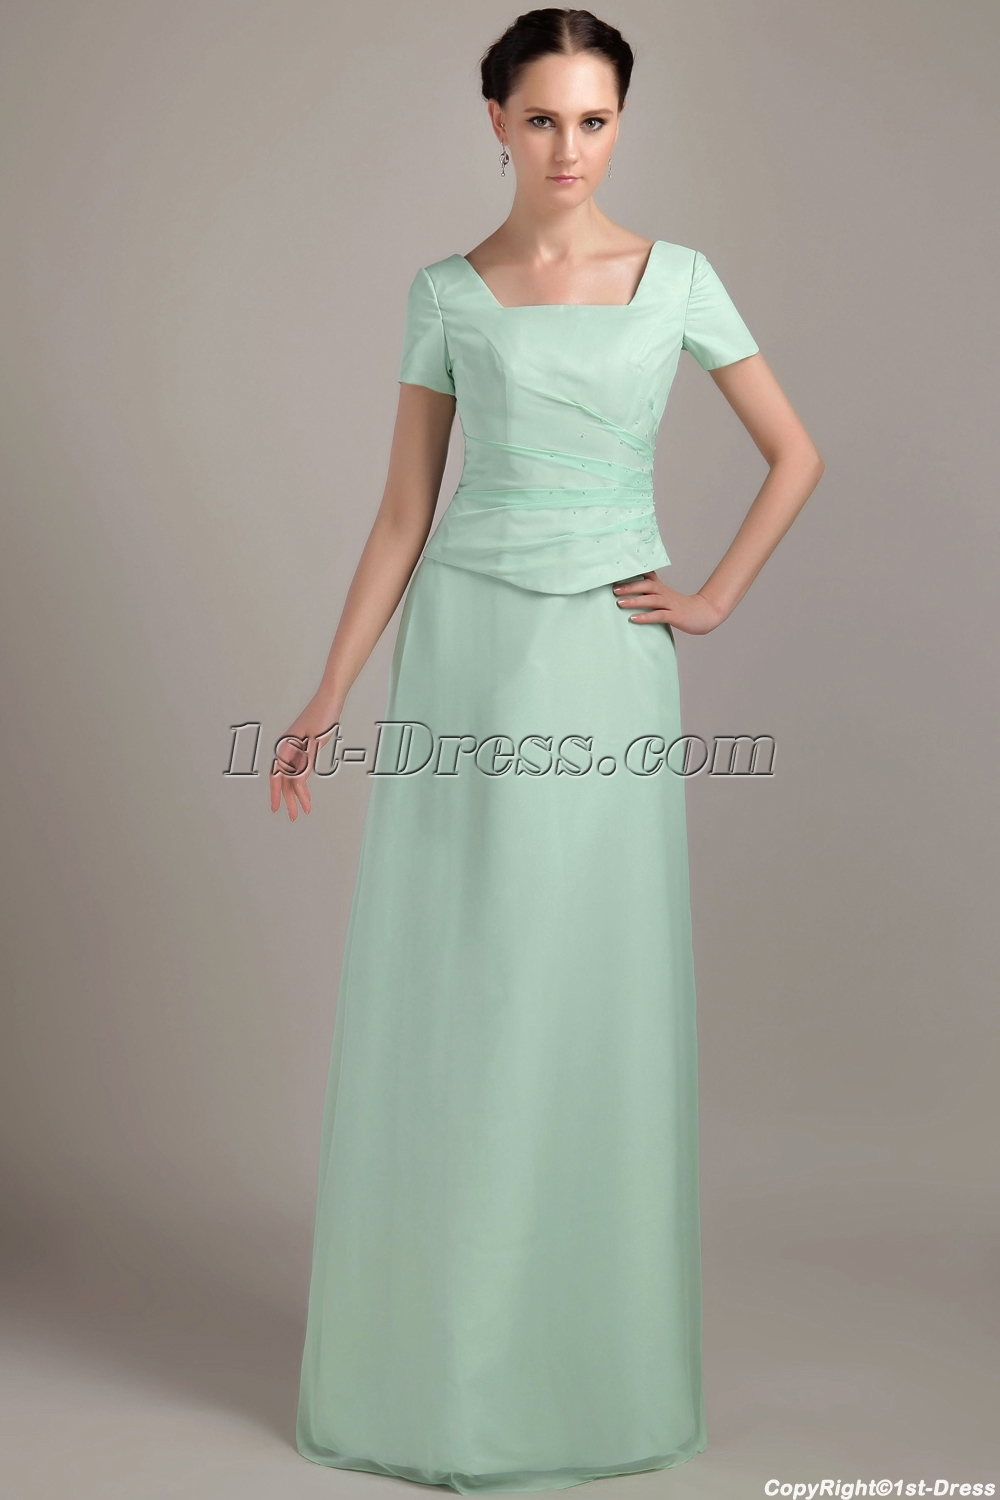 images/201304/big/Sage-Modest-Long-Mother-Of-Bride-Dress-with-Short-Sleeves-IMG_2185-1027-b-1-1366202785.jpg